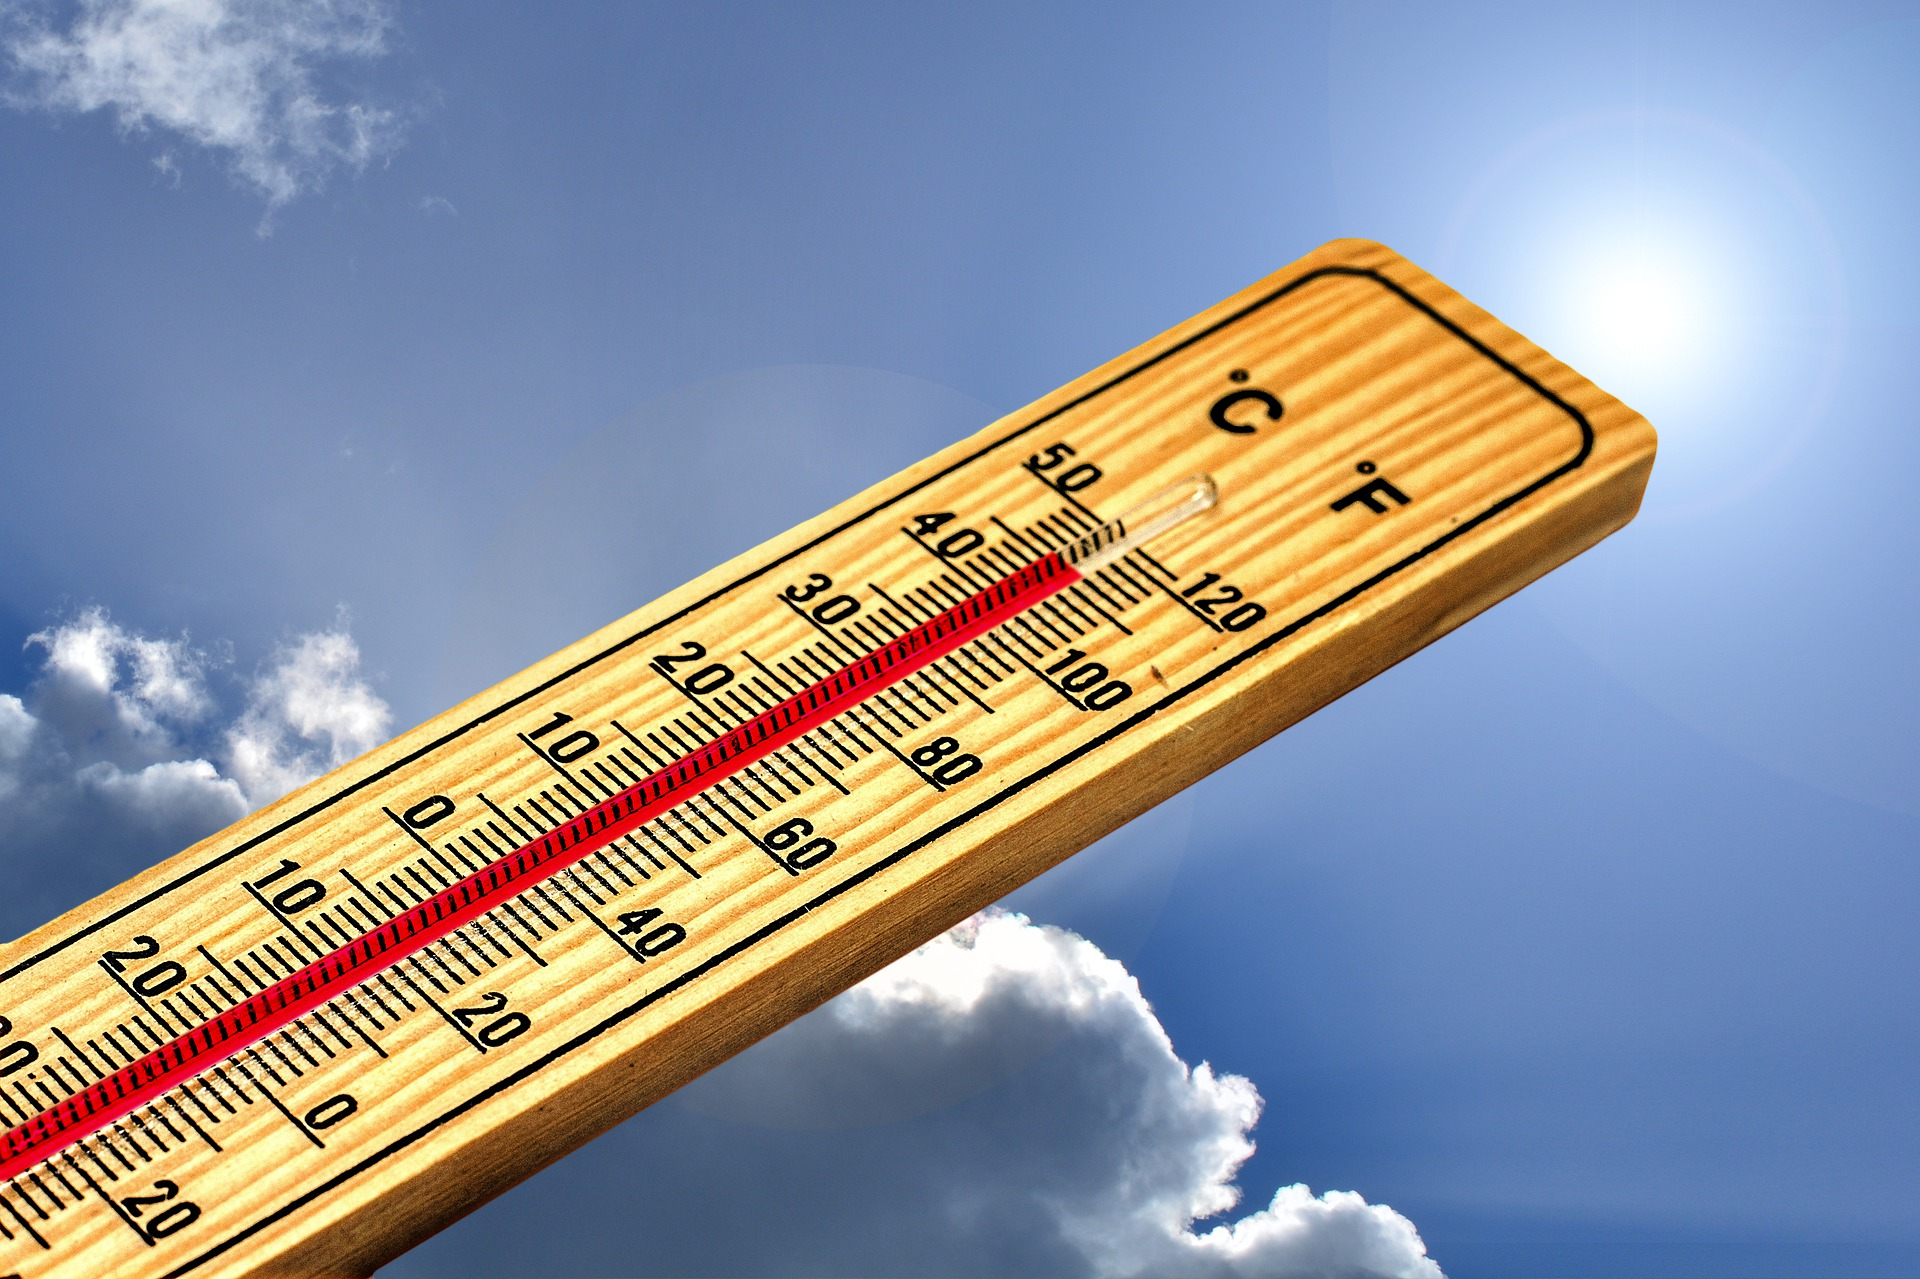 thermometer-4767443_1920